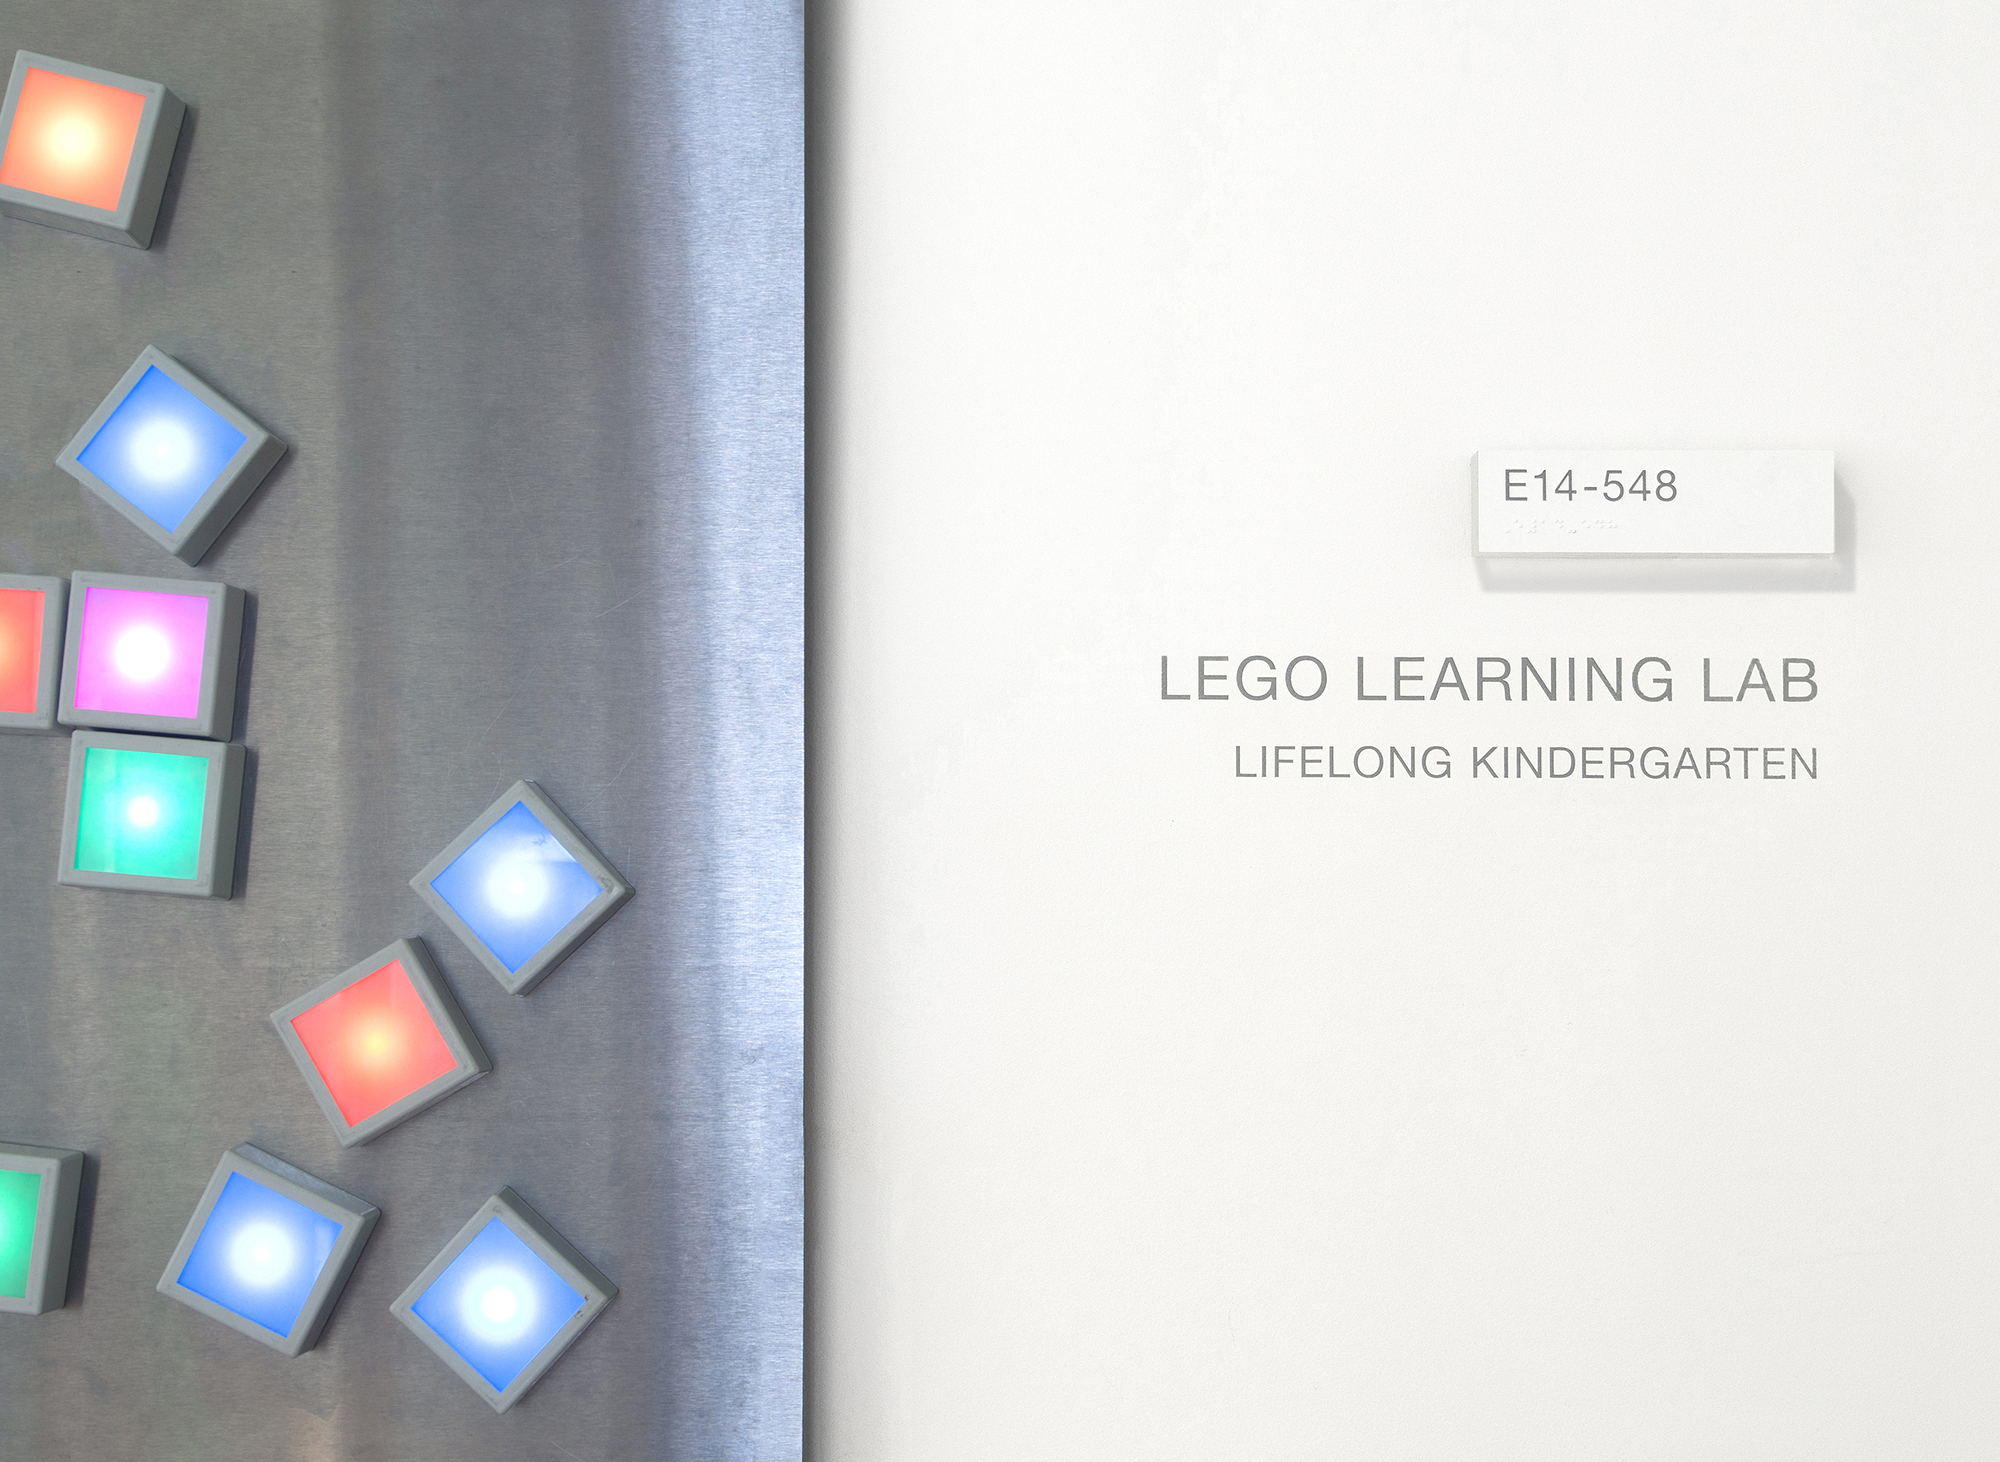 Lego-learning-lab.jpg